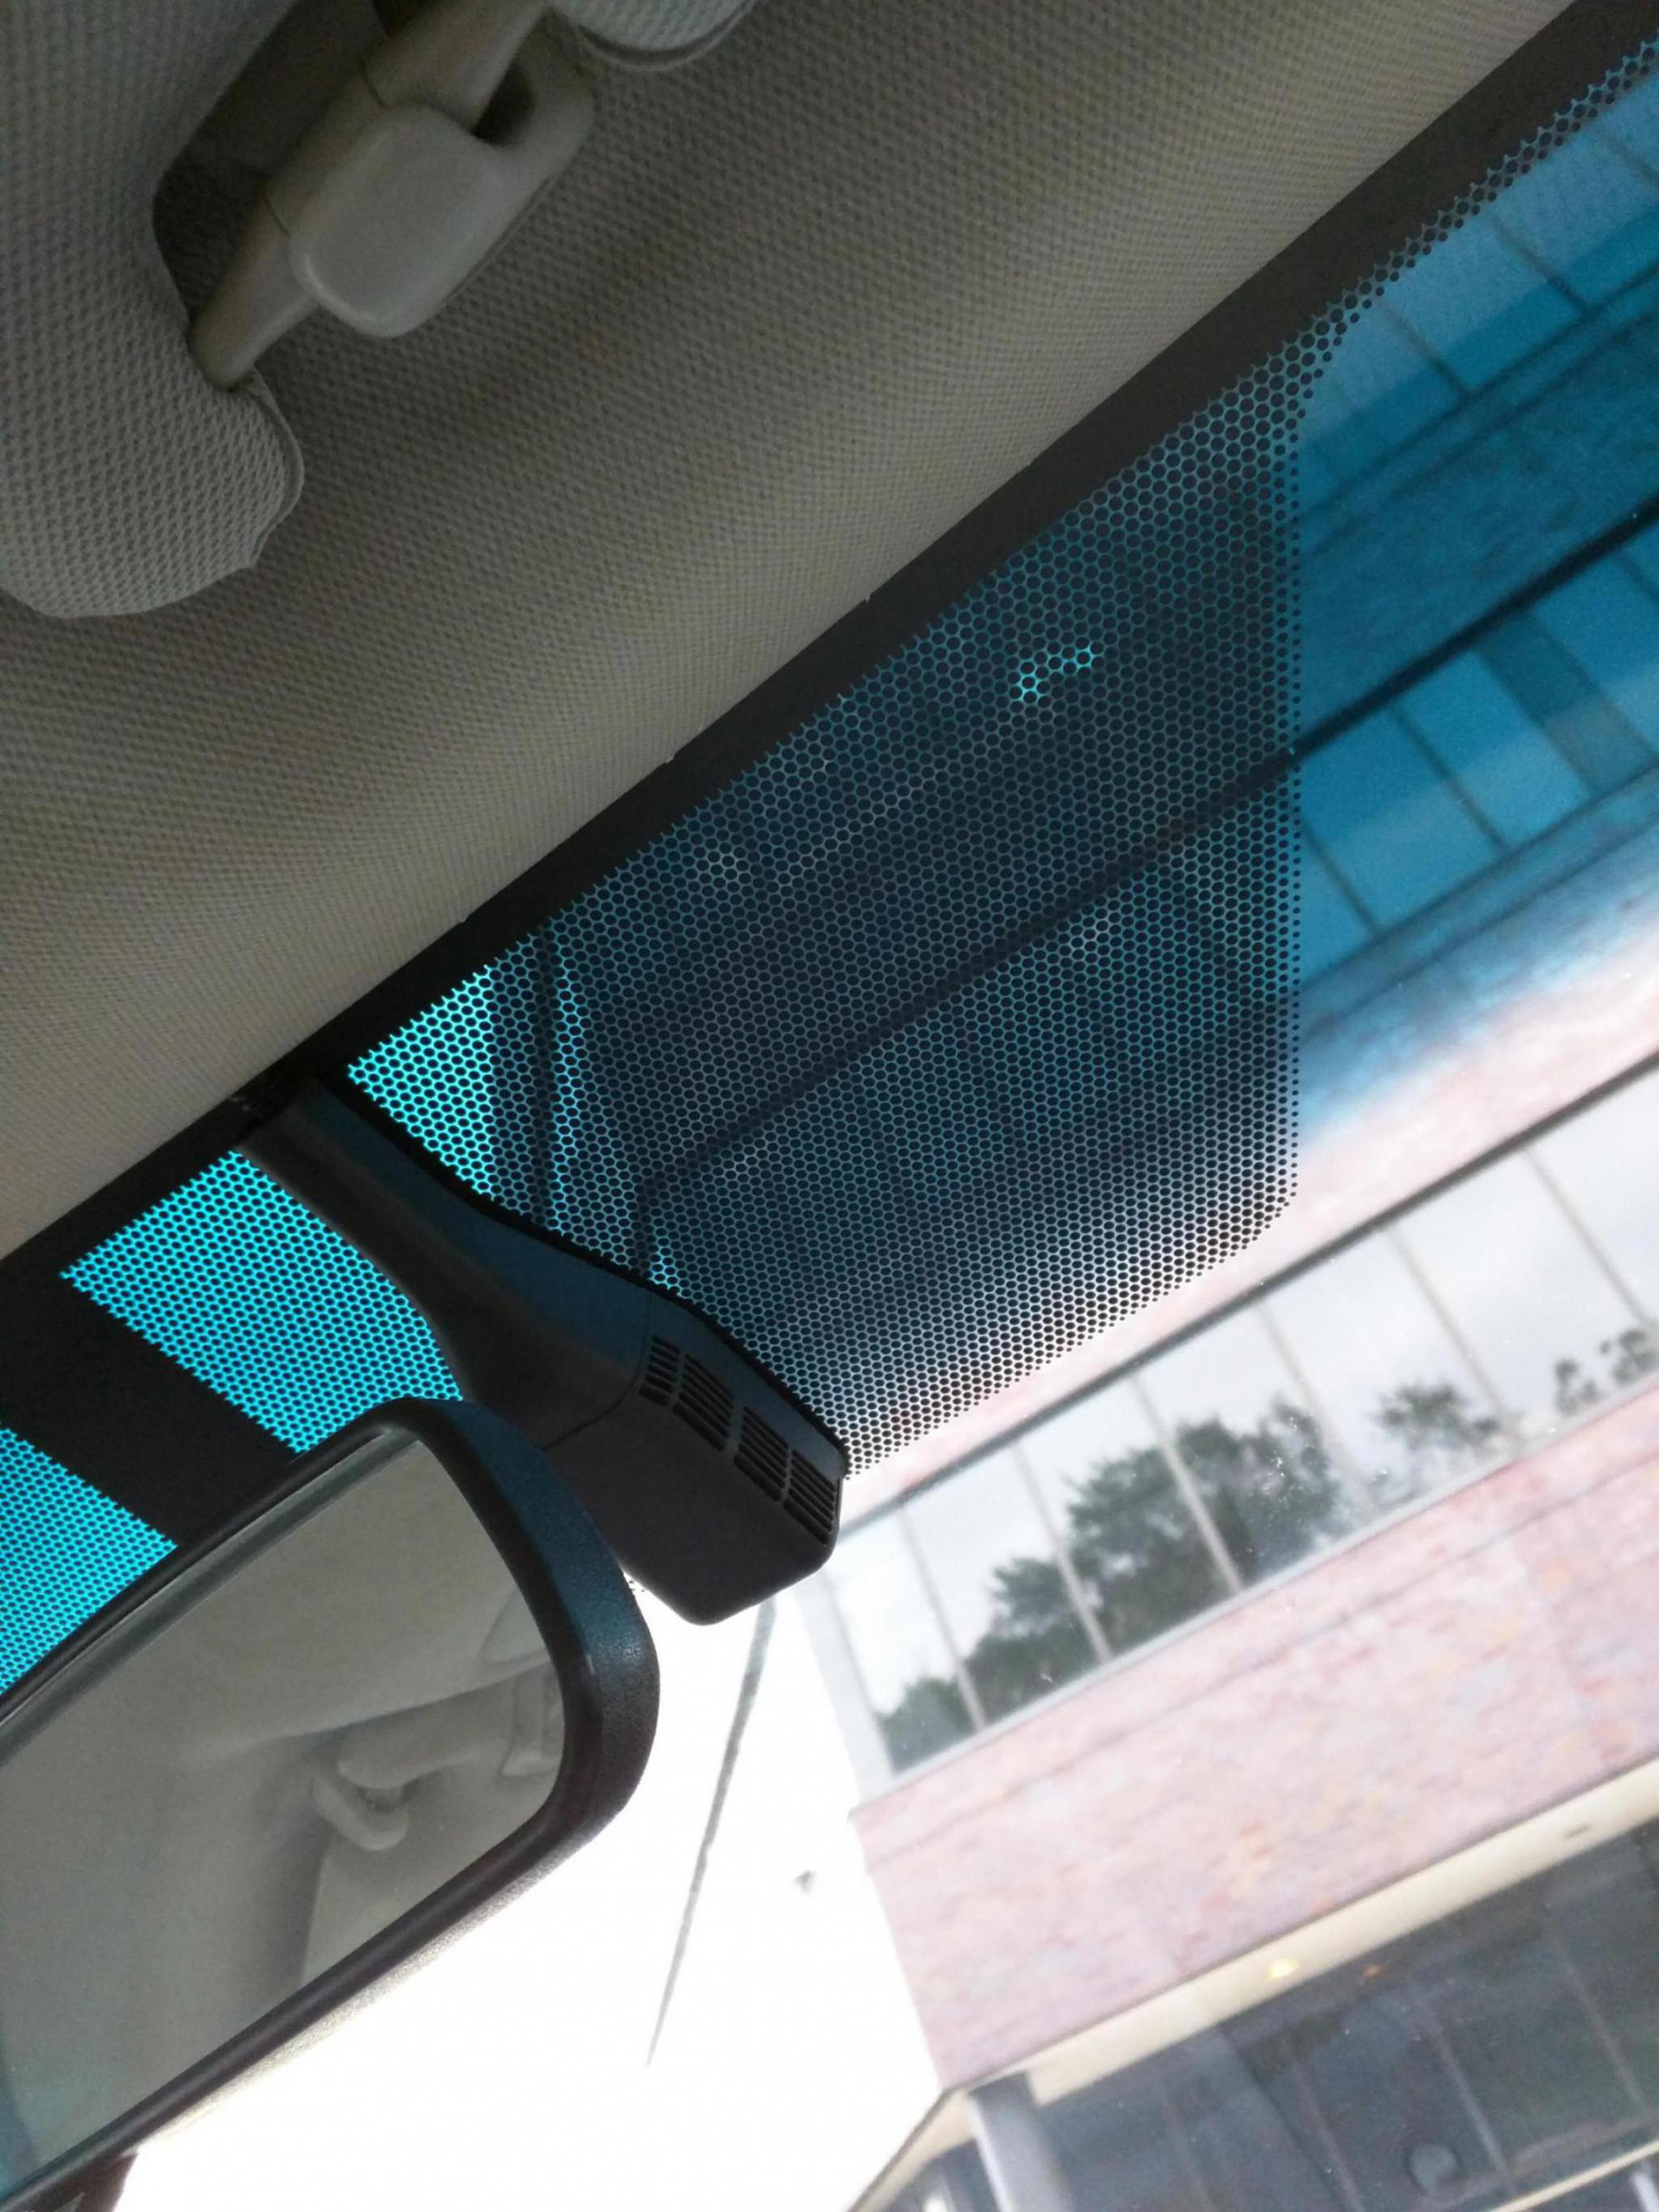 2017 Dodge Charger >> What is the sensor looking device to the right of the rearview mirror. (2012 Camry LE - Toyota ...